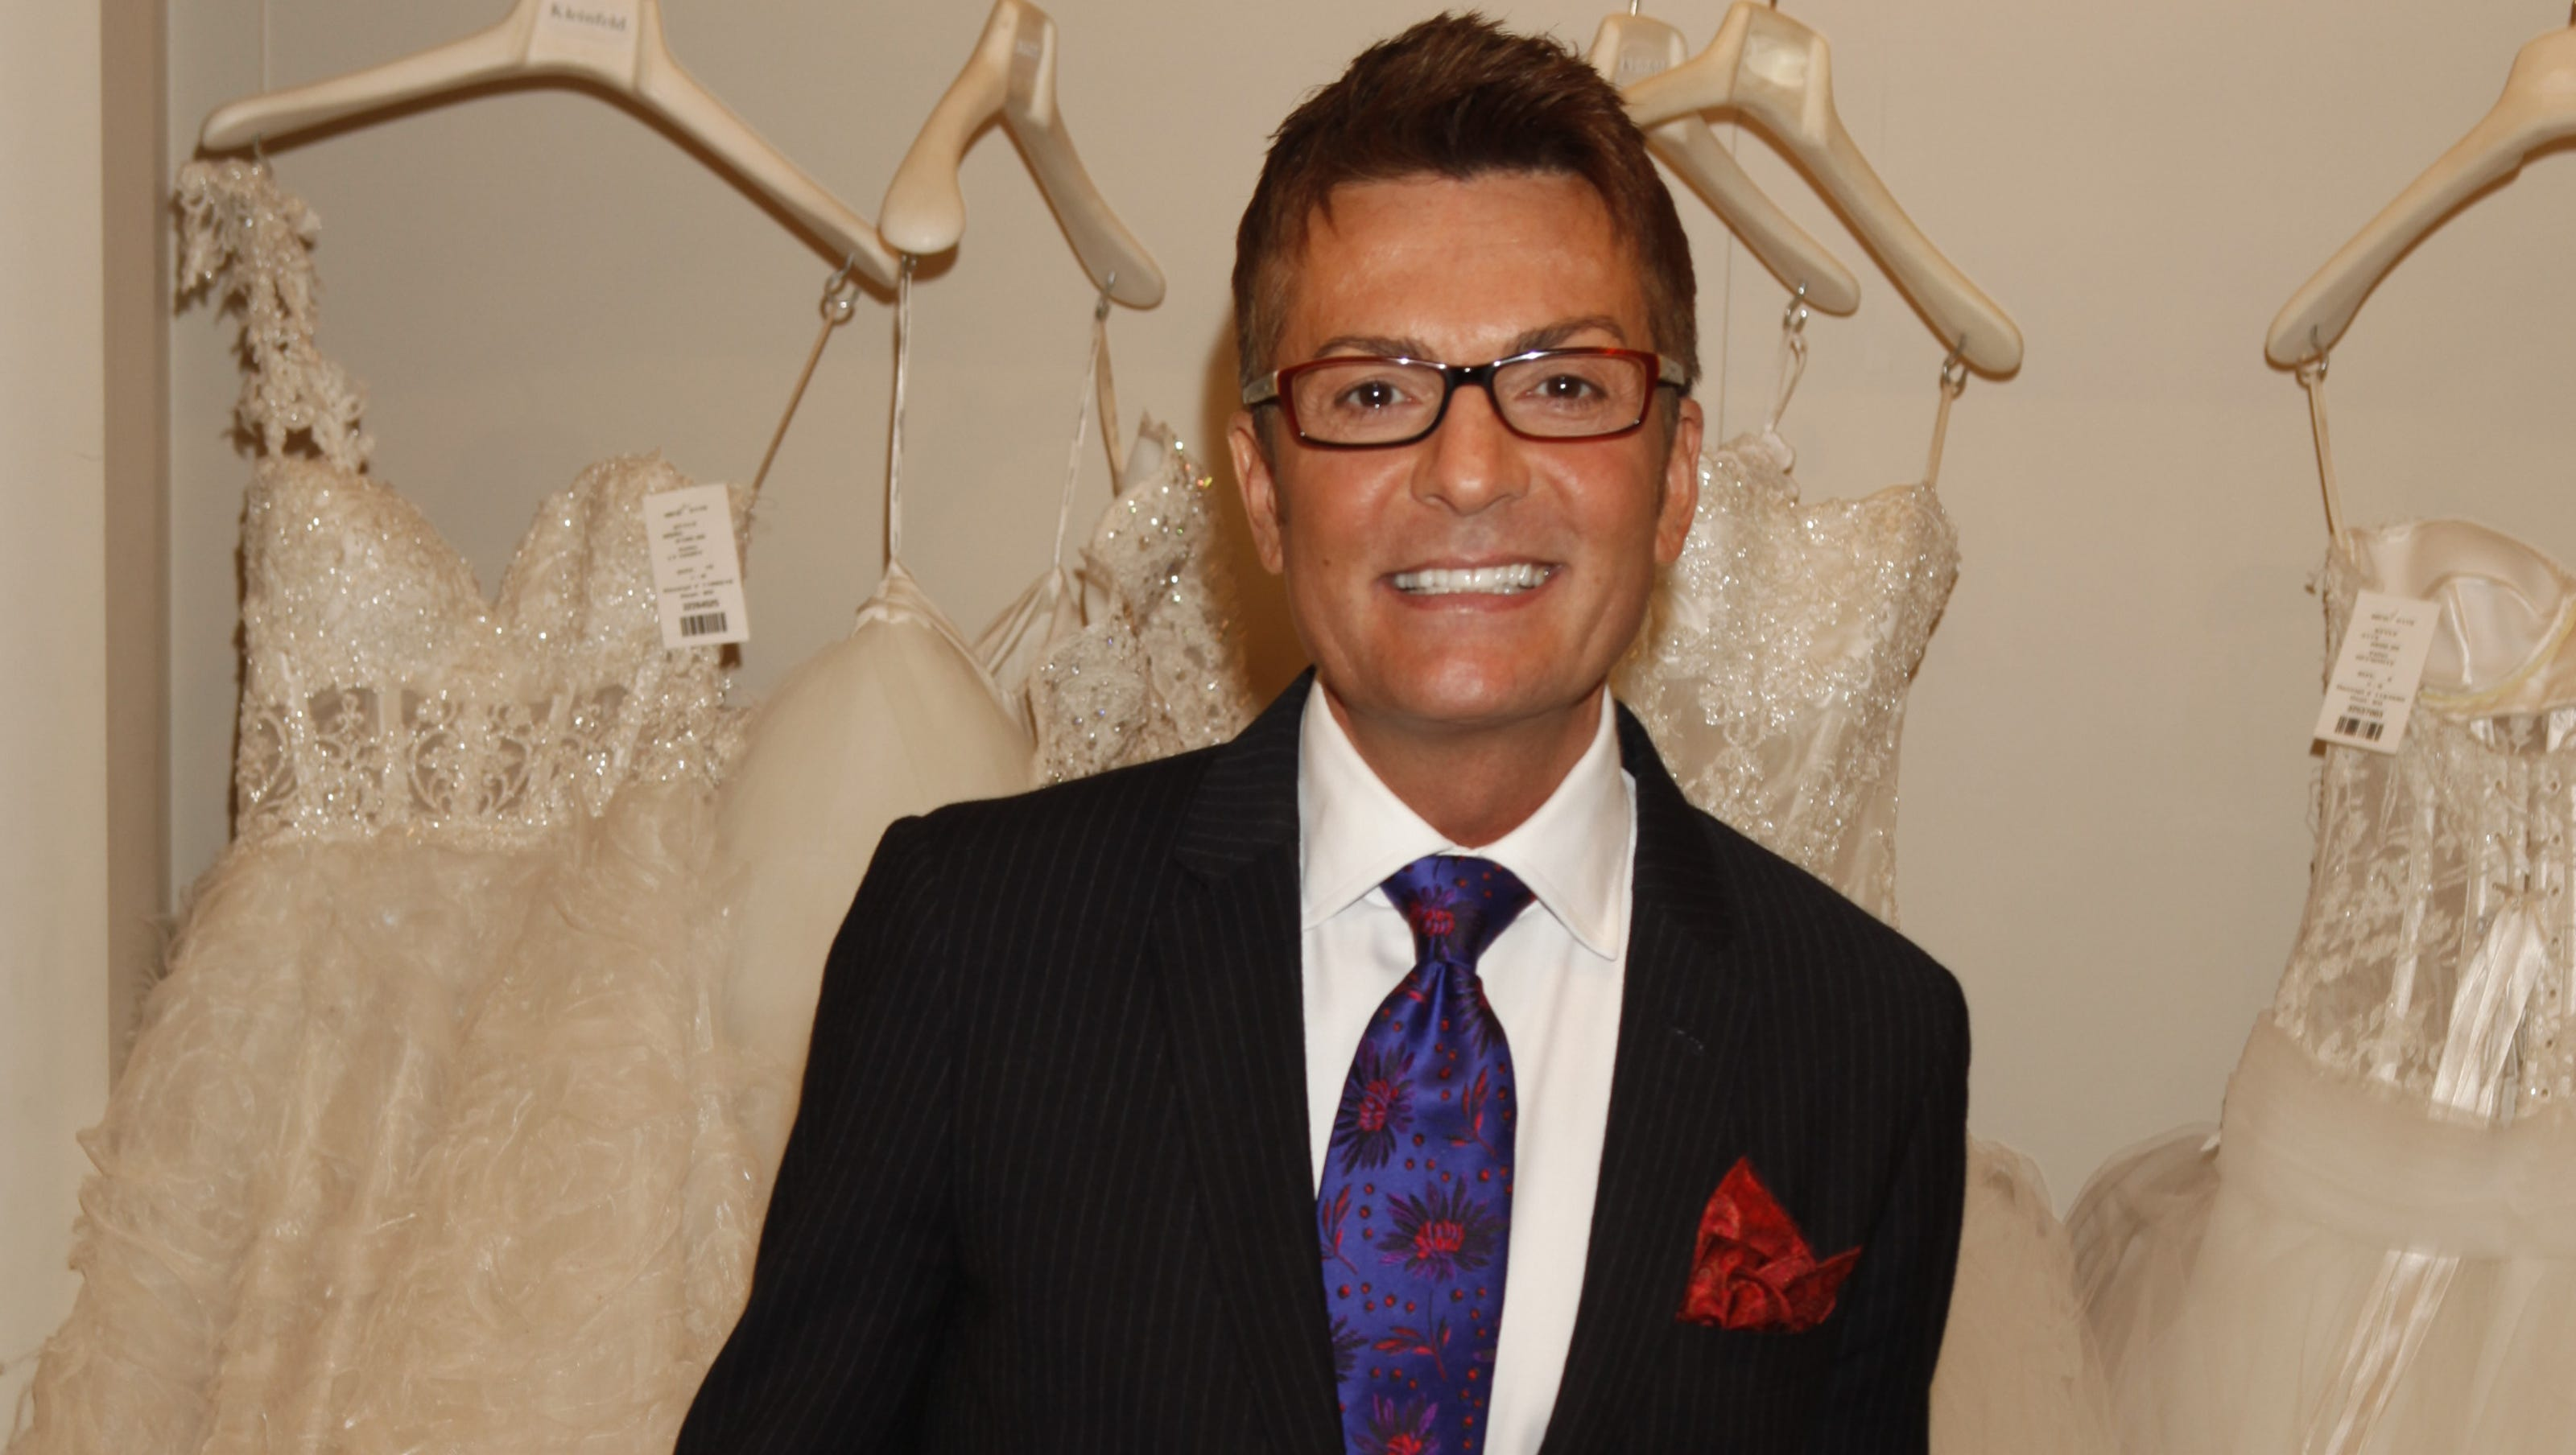 Randy Fenoli Of 'Say Yes To The Dress' Visits Women's Show